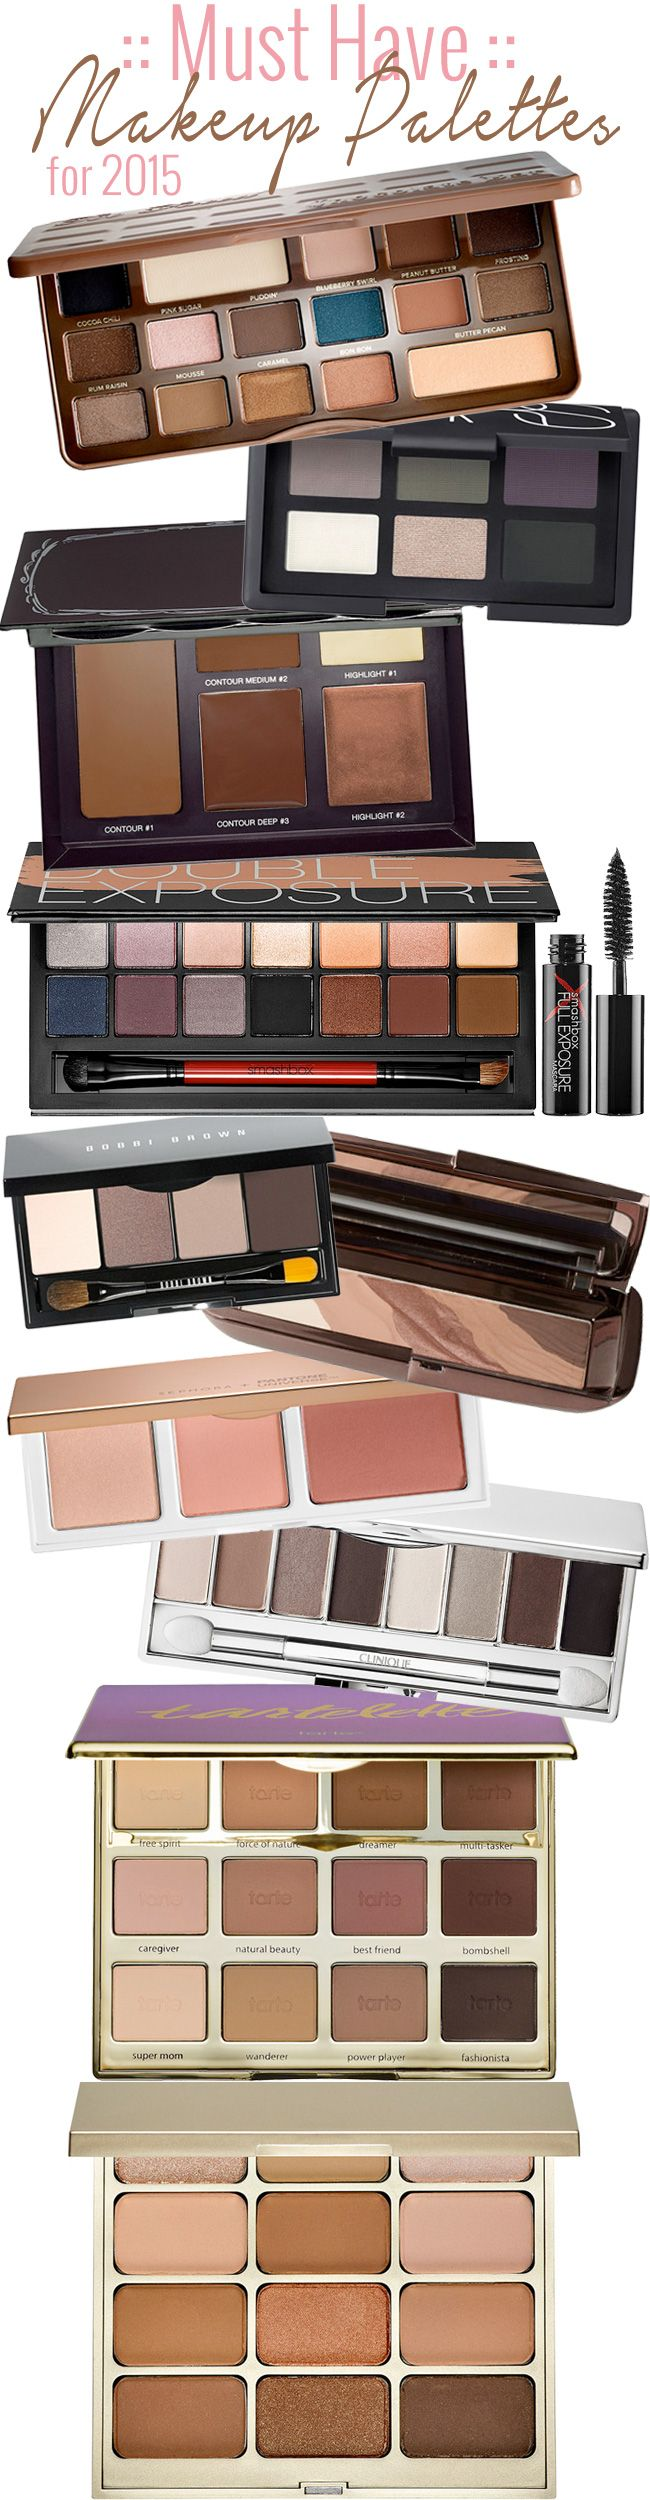 Can't survive without palettes #promua